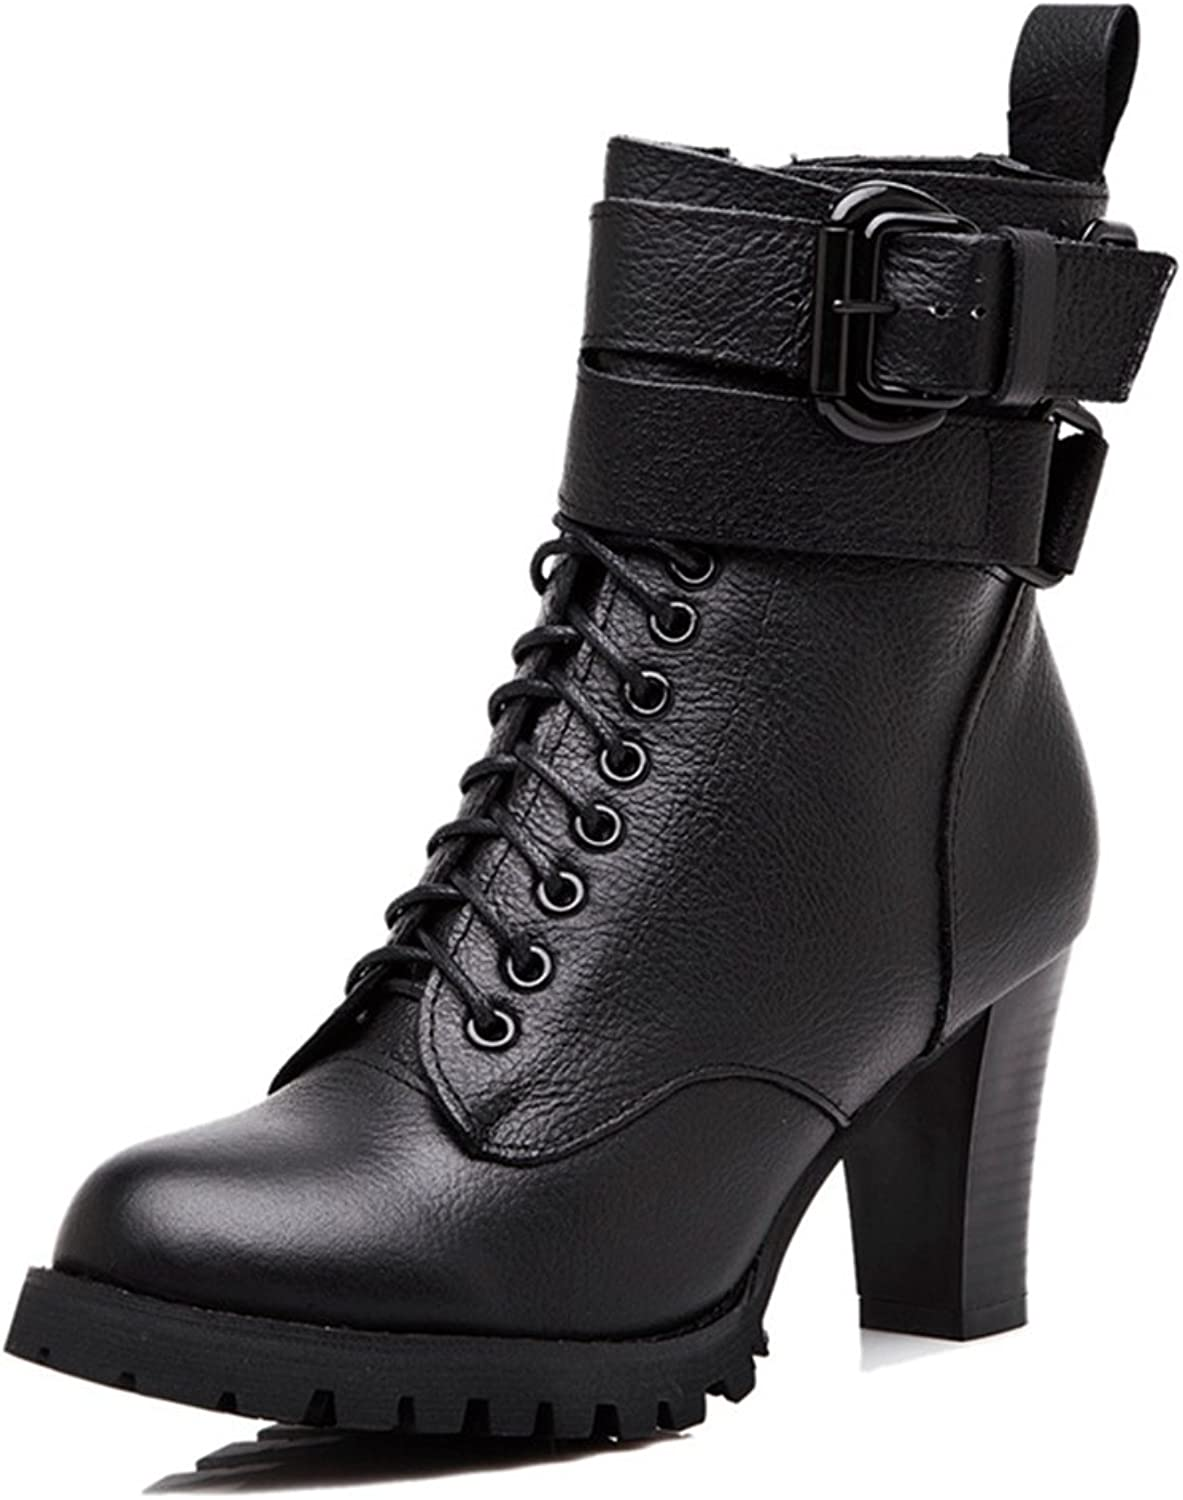 Womens Winter Fur Lining Martin Ankle Boot High Heel Round Toe Zipper Lace-up Elastic Combat Short Boots